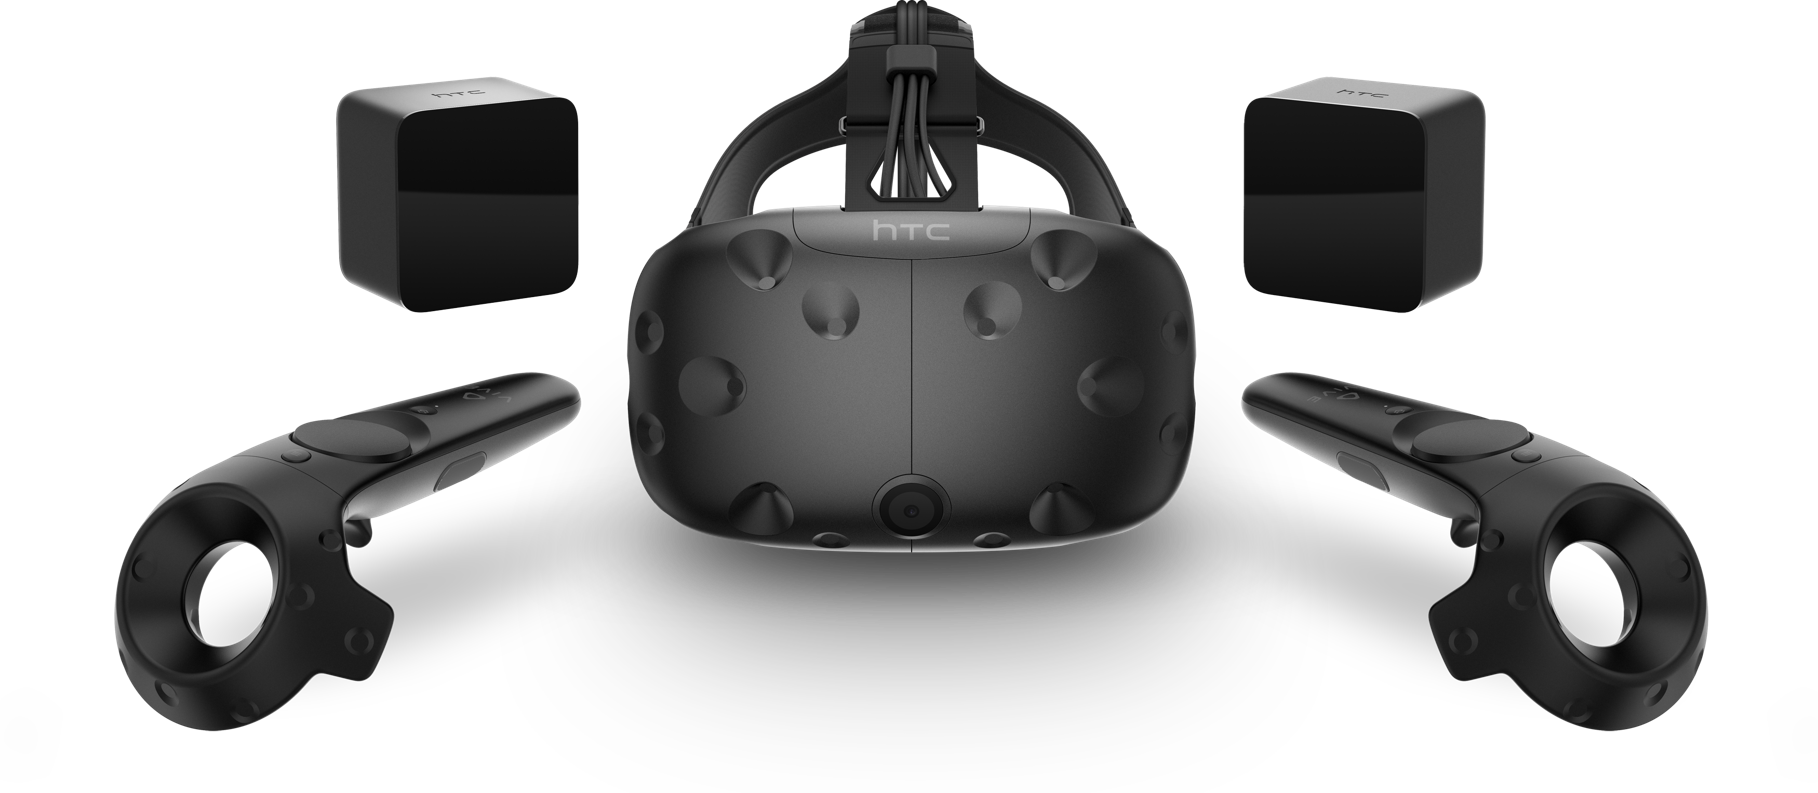 HTC VIVE Kit